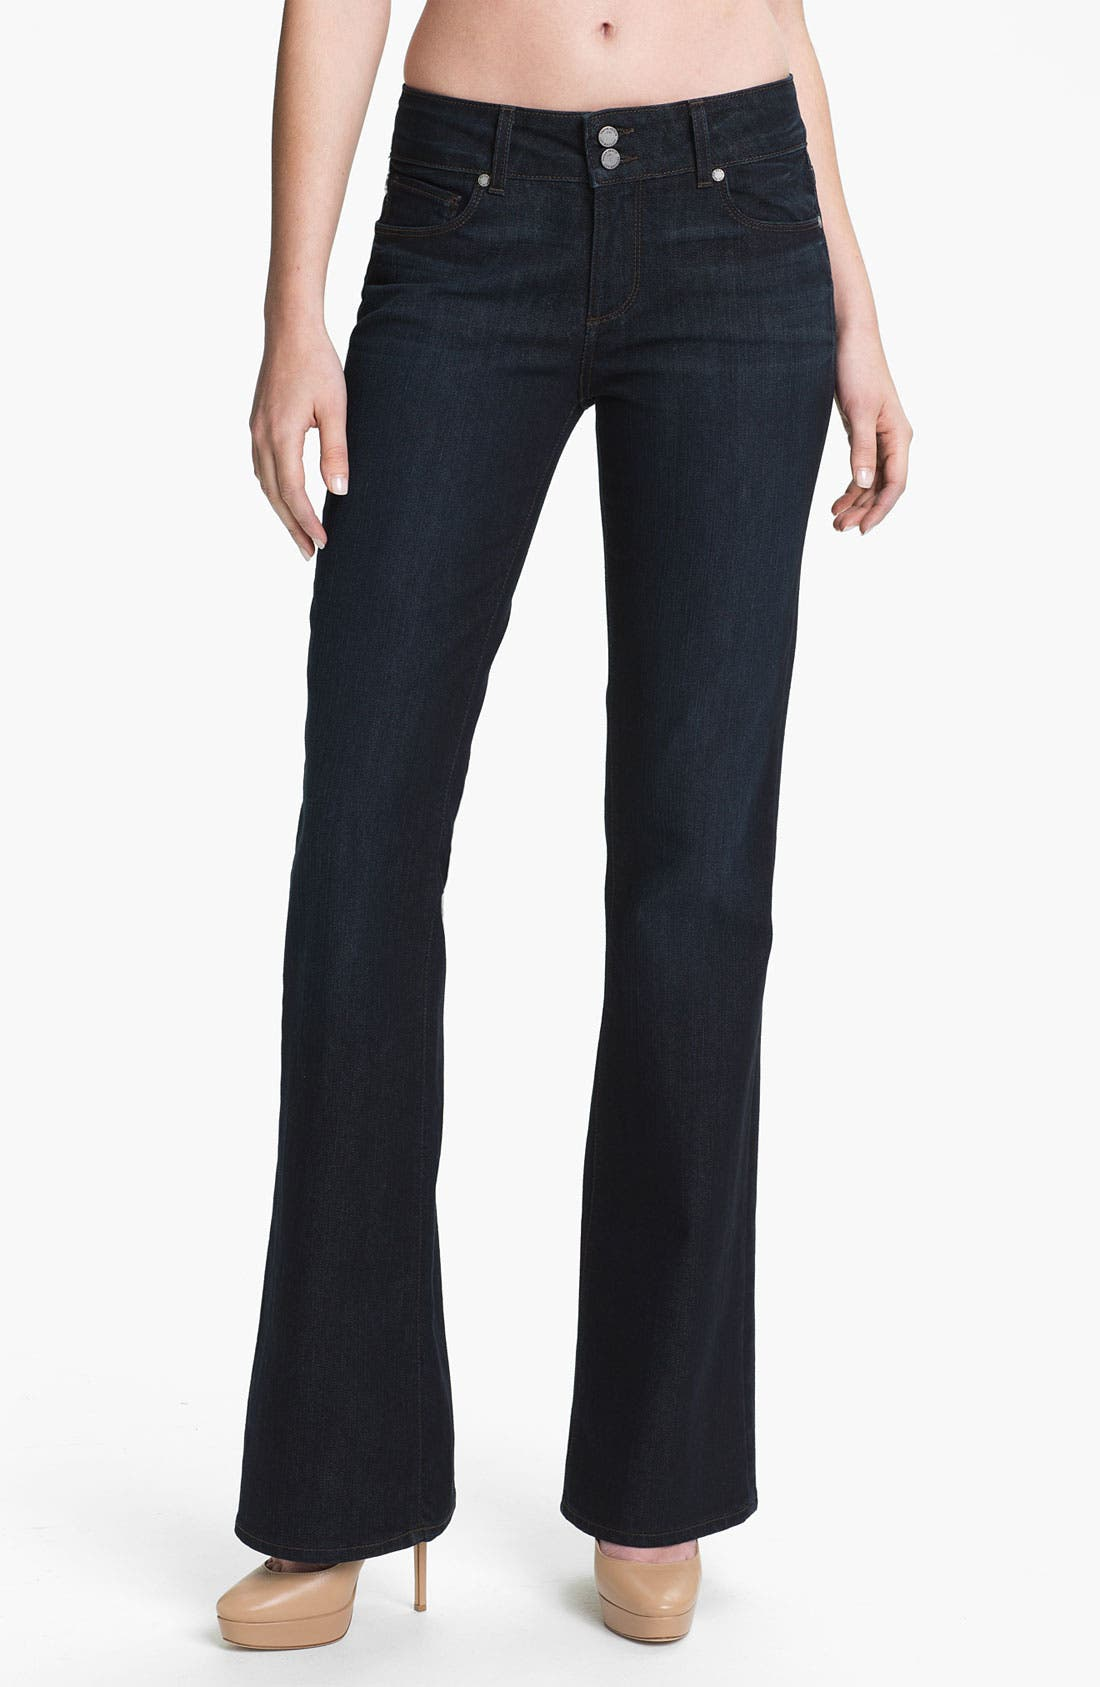 Alternate Image 1 Selected - Paige Denim 'Hidden Hills' Bootcut Jeans (Nocturnal)